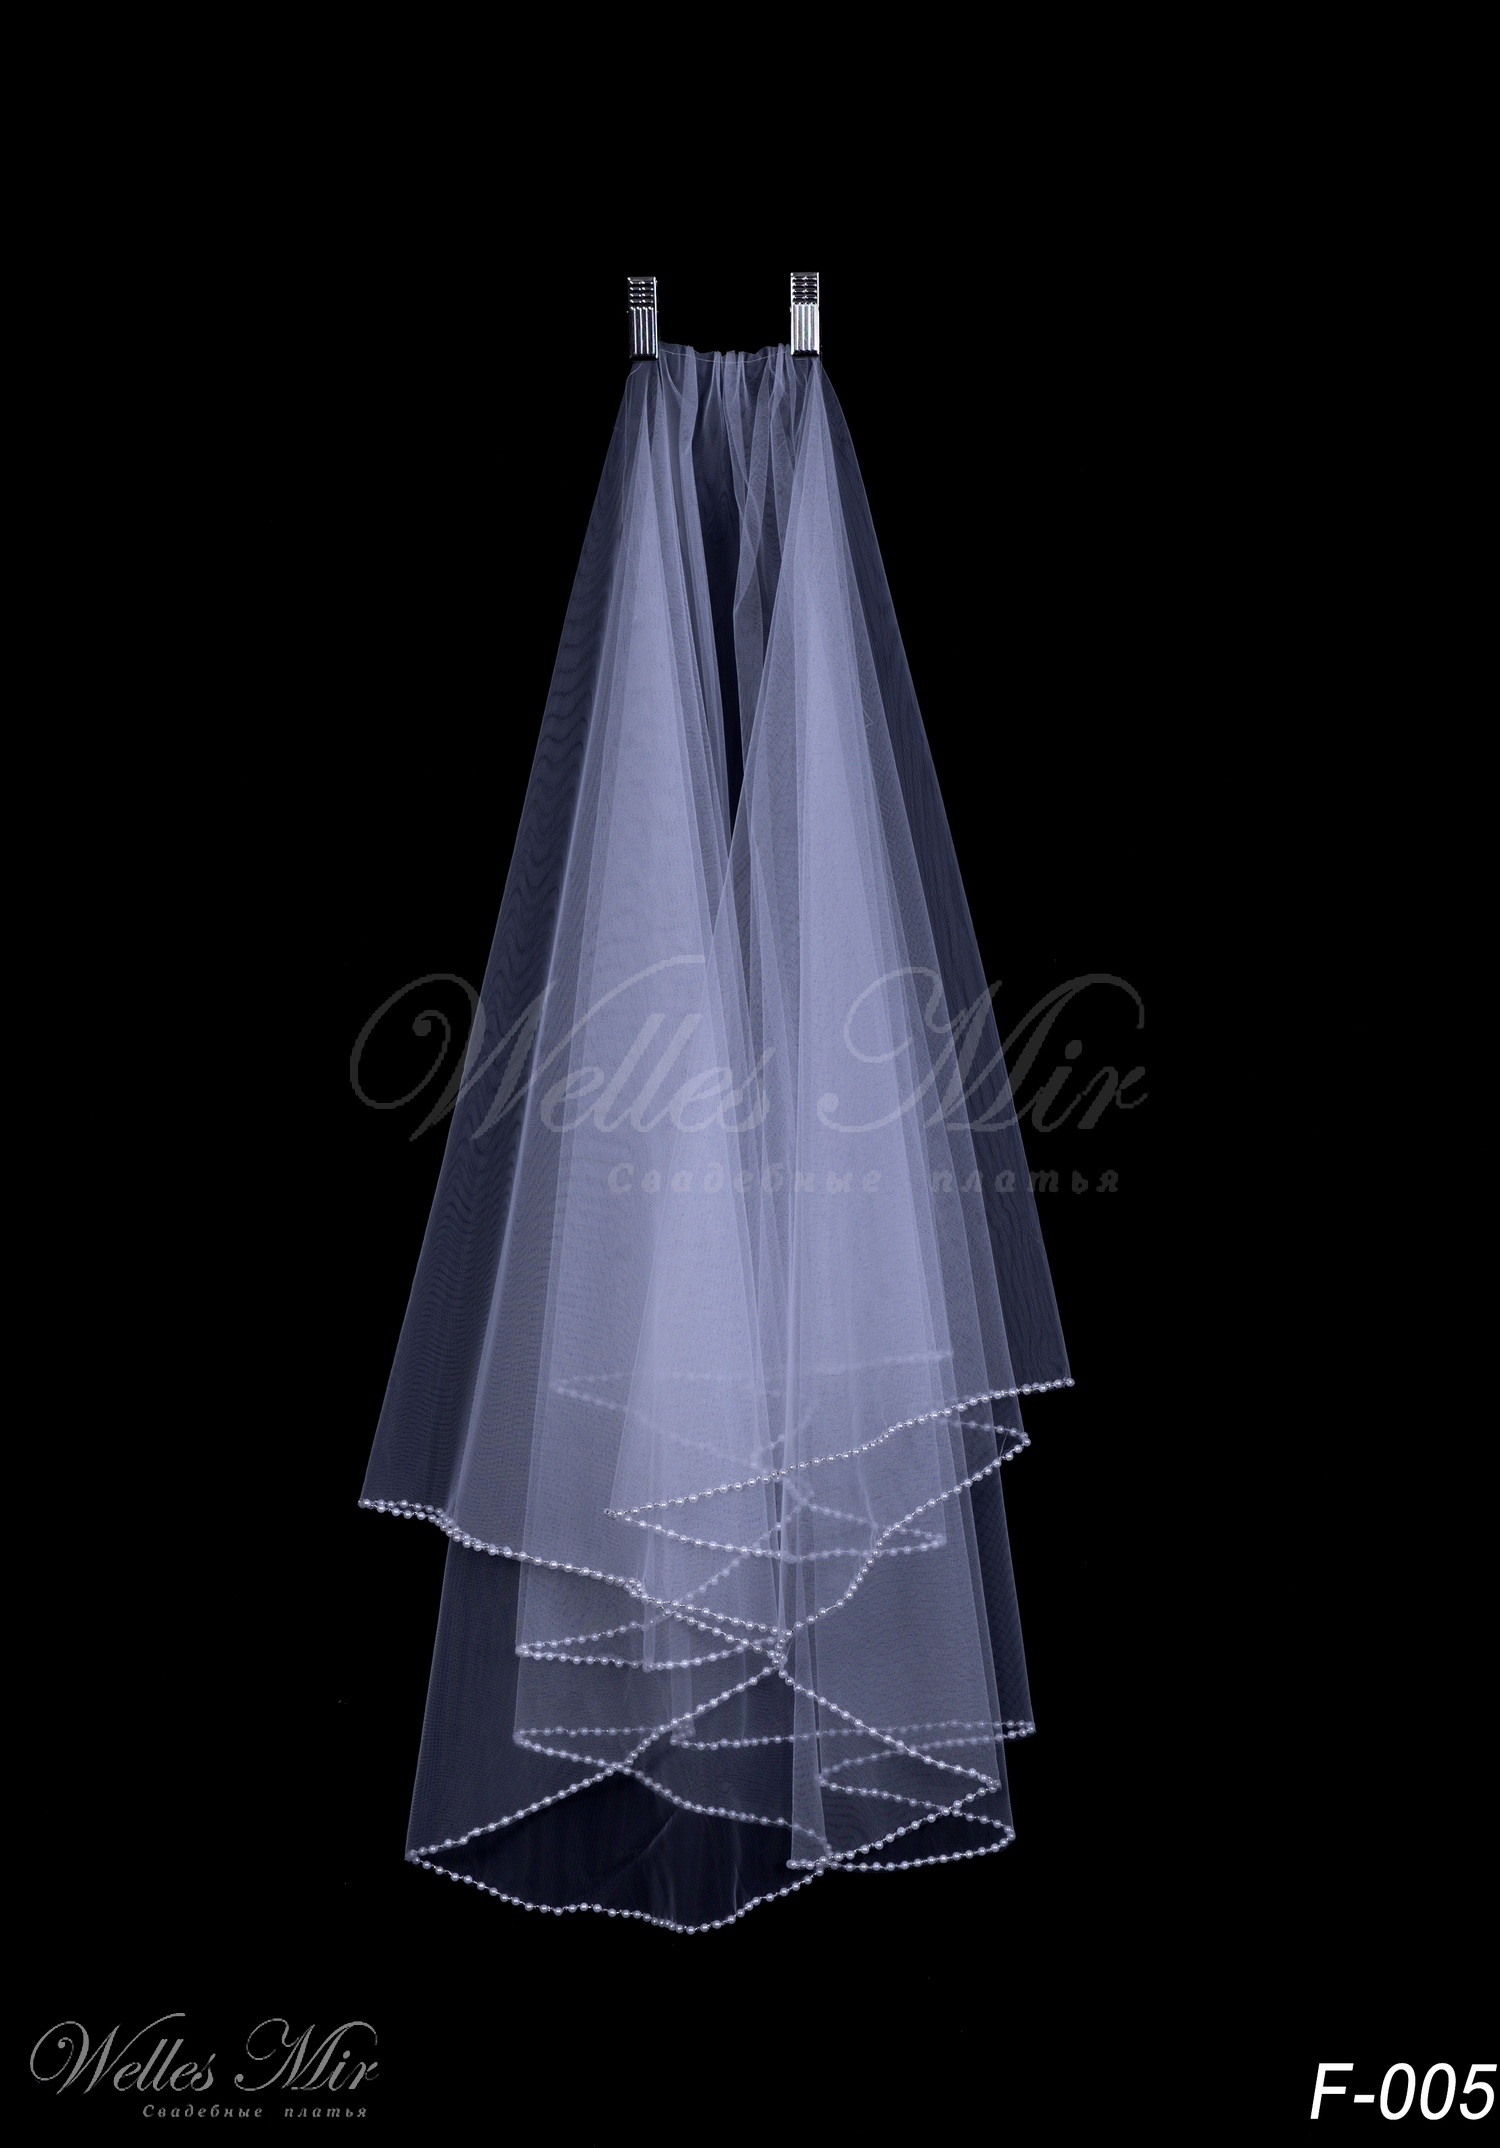 Bridal veil with pearls F-005